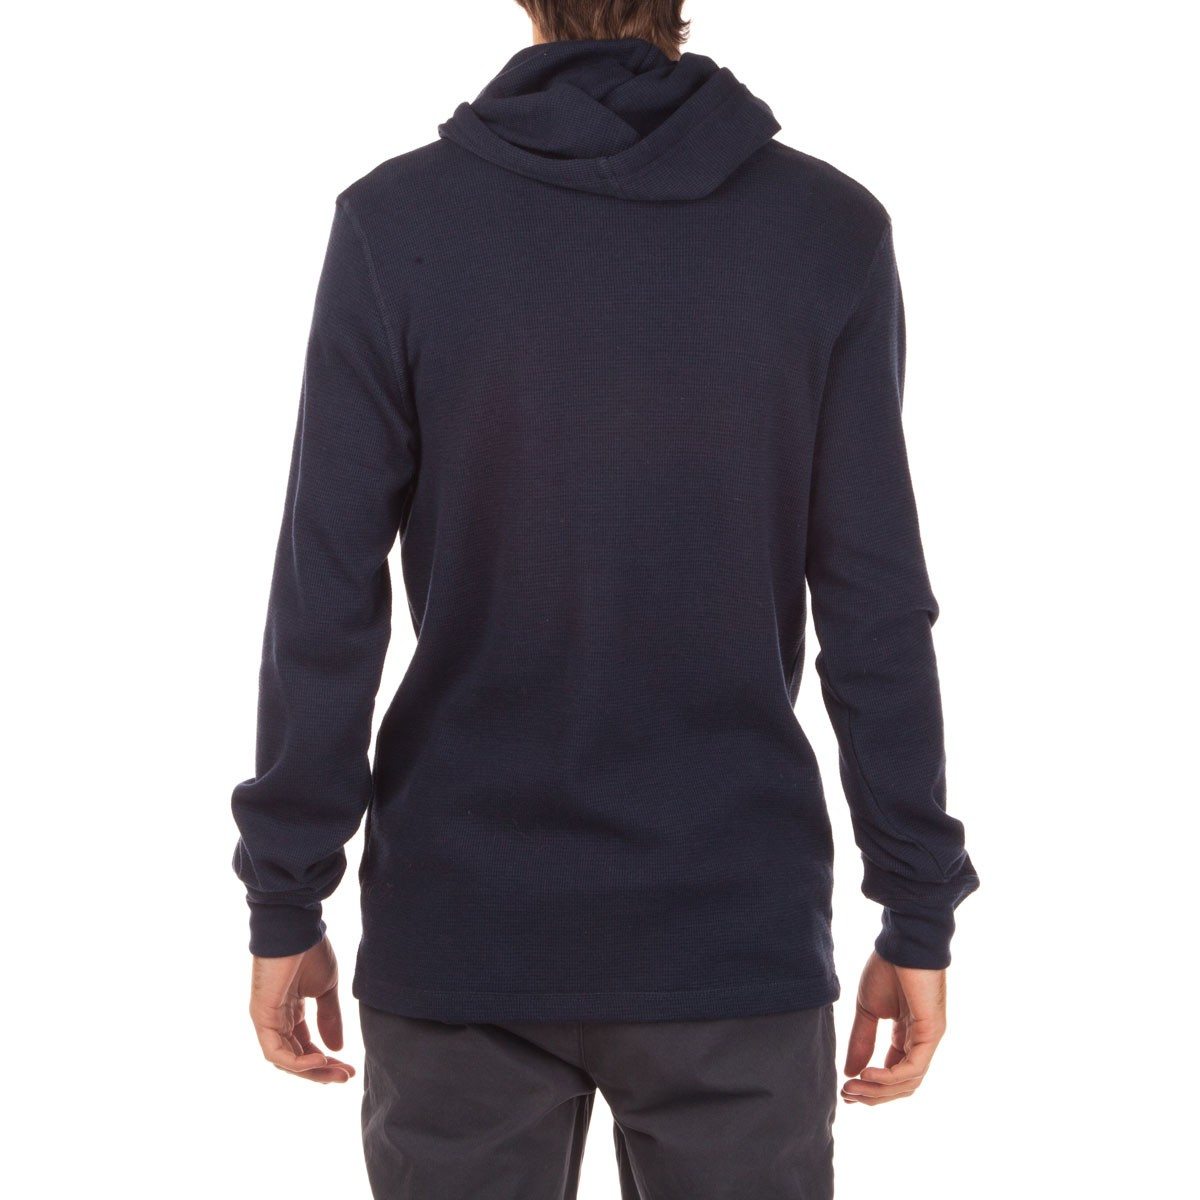 Long Sleeve Hooded Thermal Shirt - Navy